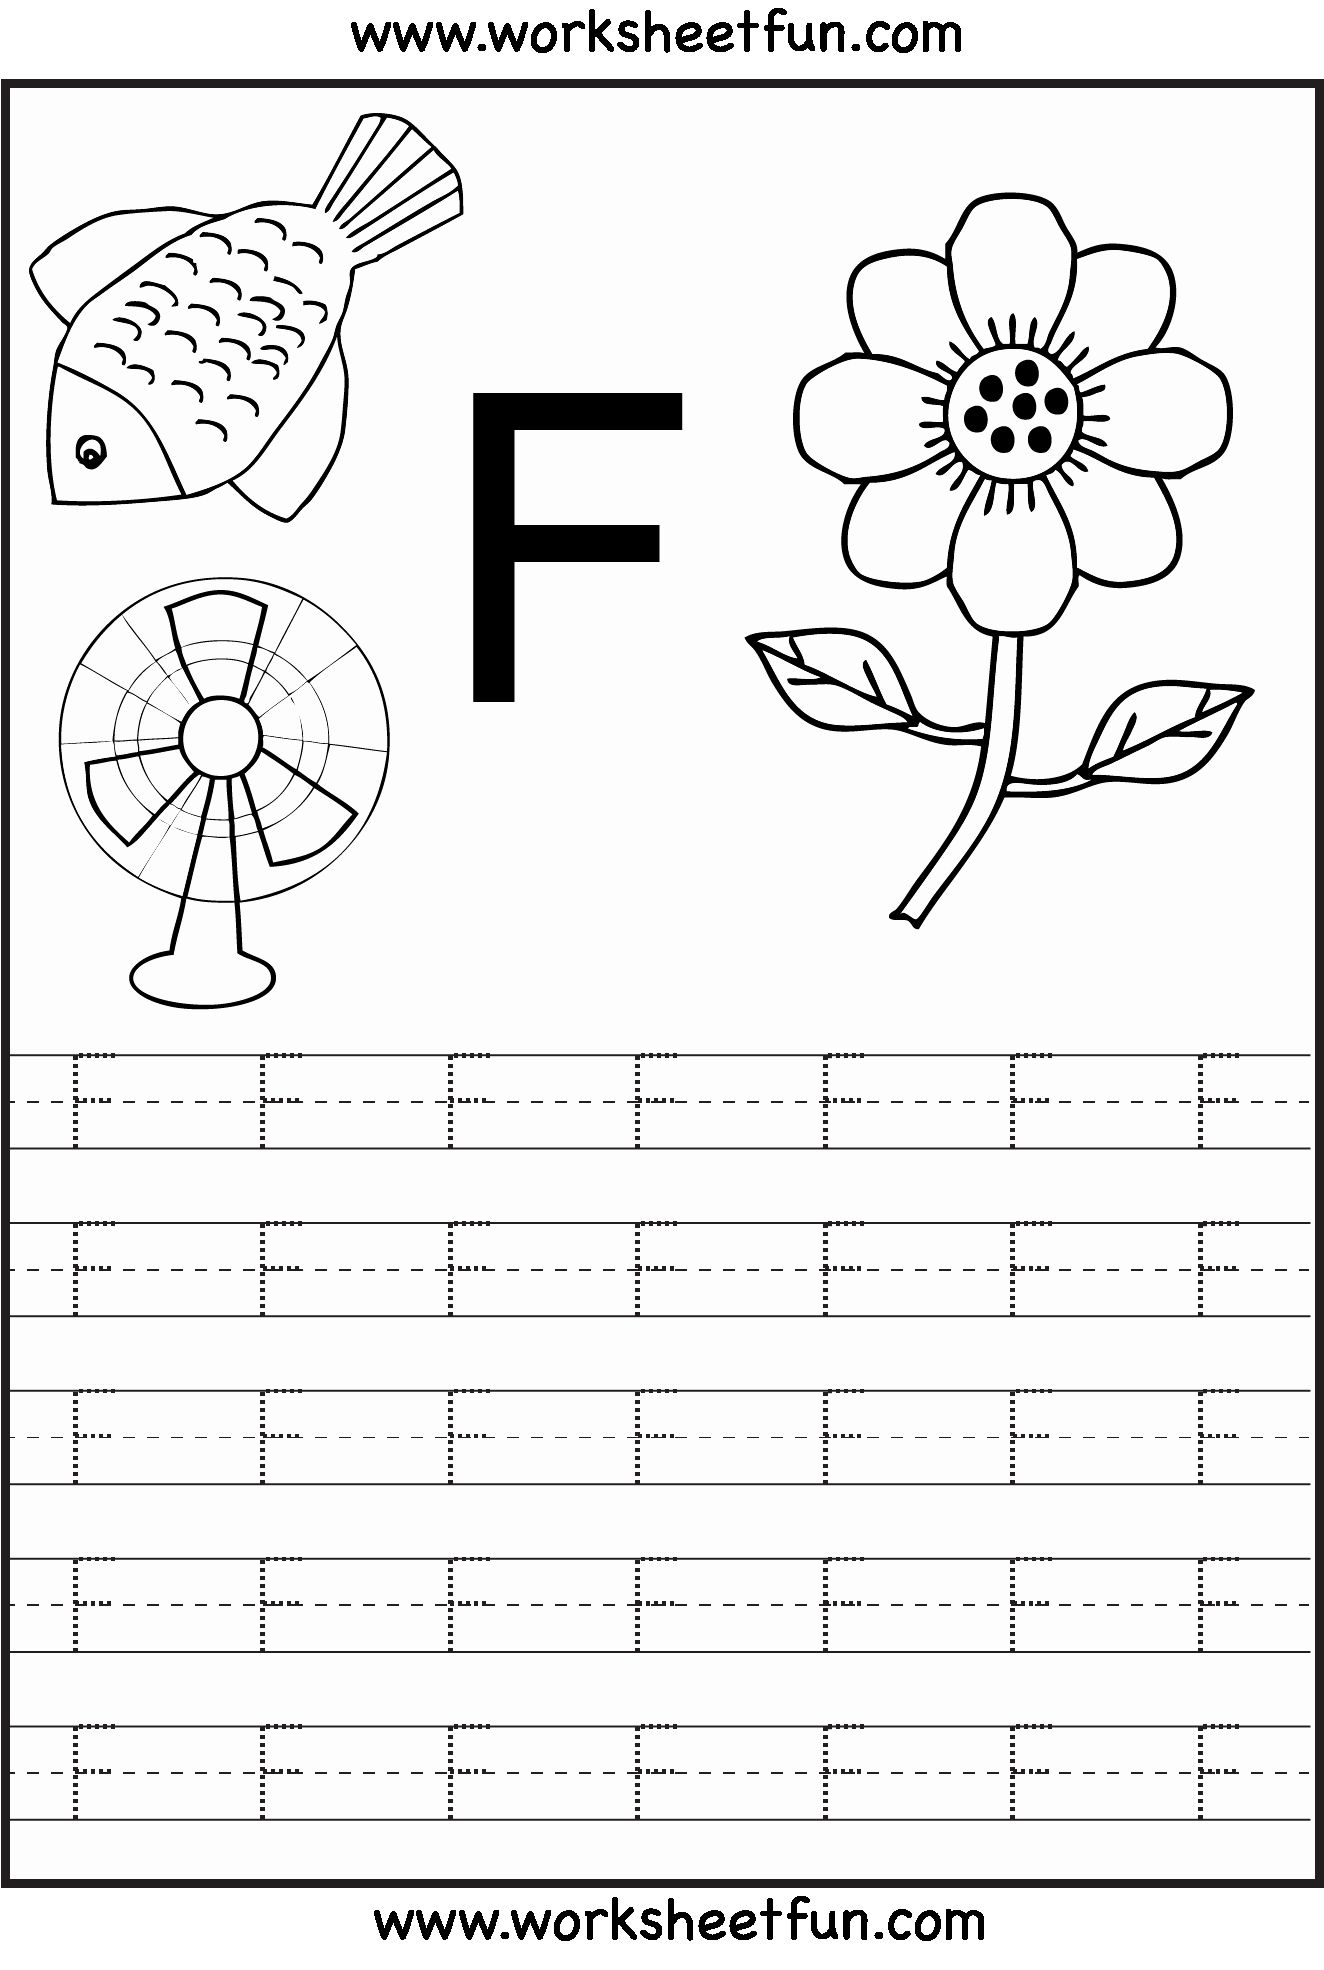 Coloring Capital Letters Print Inspirational Letter F Worksheets Alphabet Writing Worksheets Letter Tracing Worksheets Writing Practice Worksheets